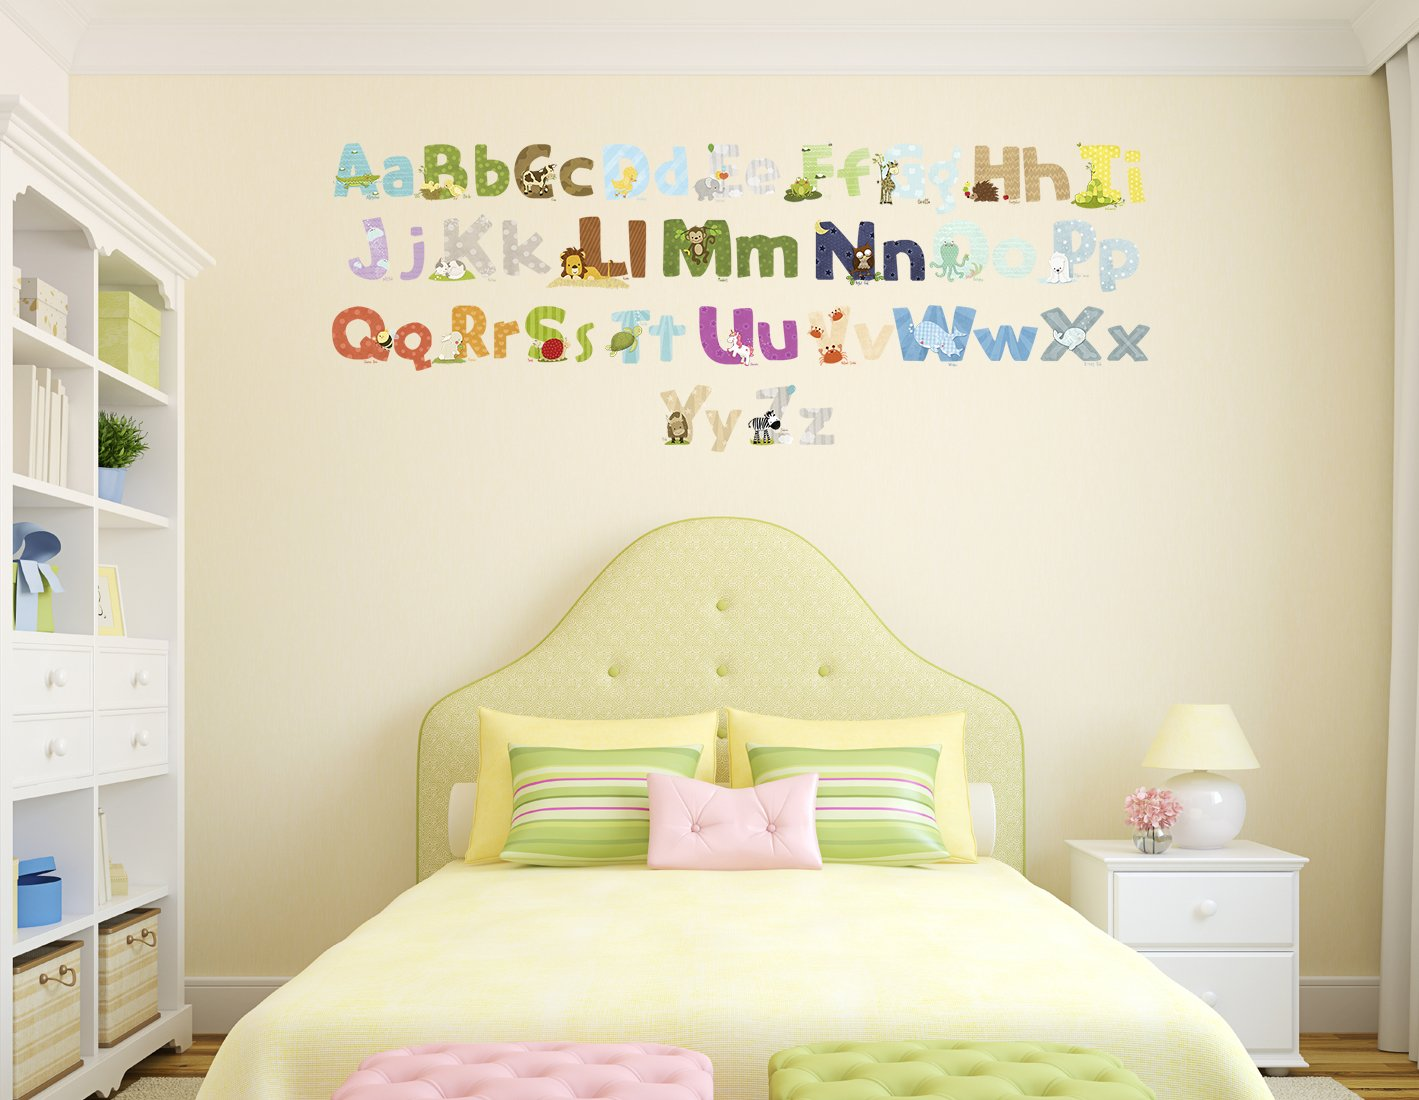 Old Fashioned Alphabet Cards Wall Art Photos - The Wall Art ...